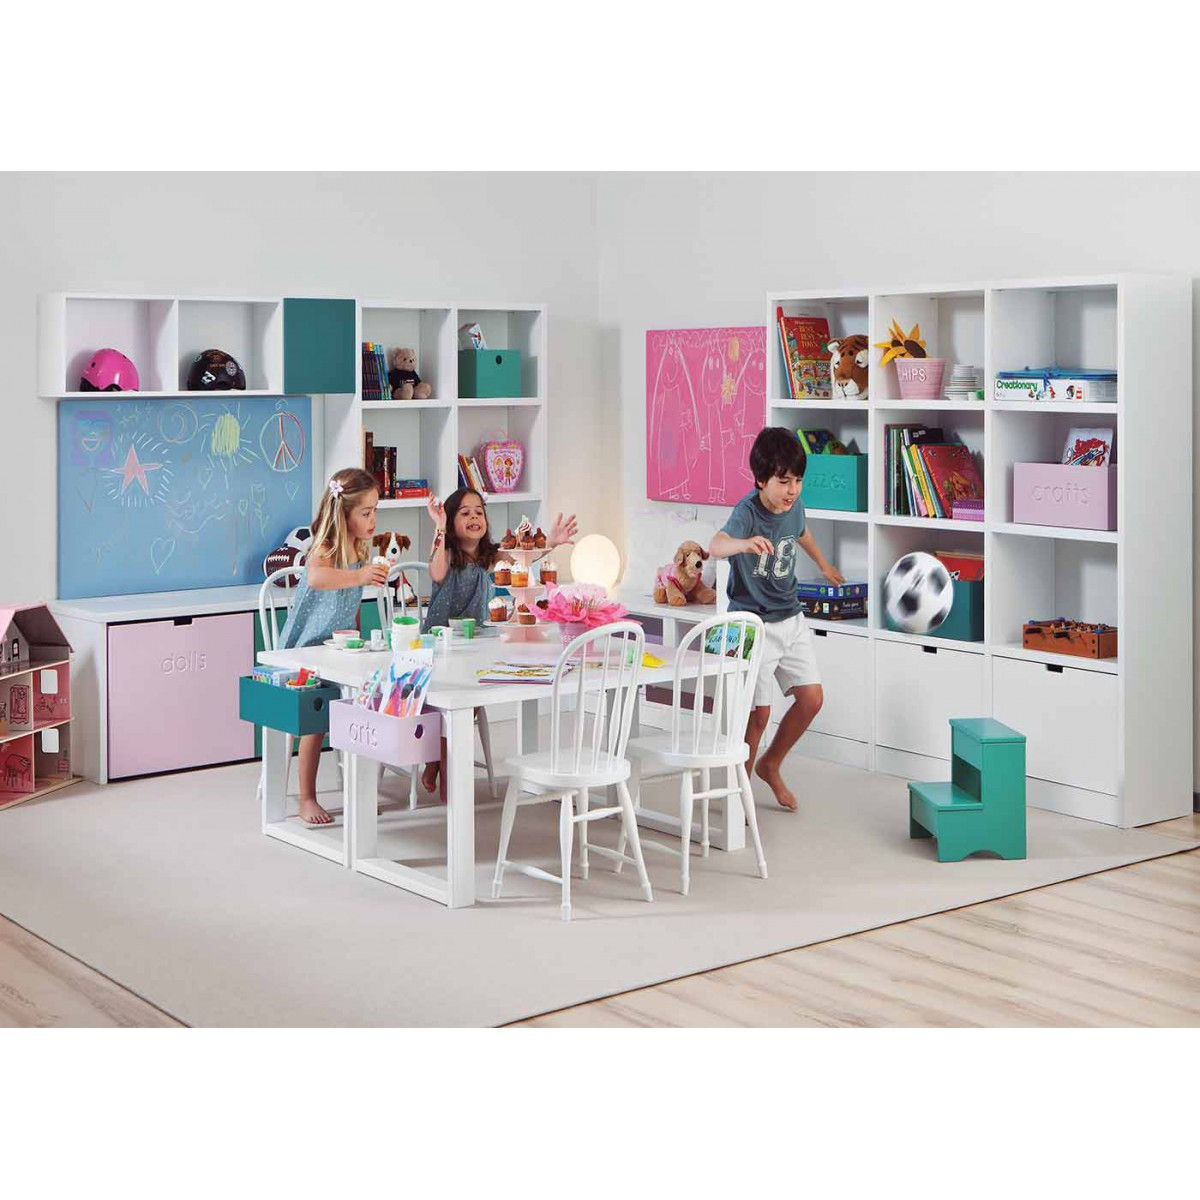 am nagement d 39 une salle de jeu pour enfants sign e asoral. Black Bedroom Furniture Sets. Home Design Ideas